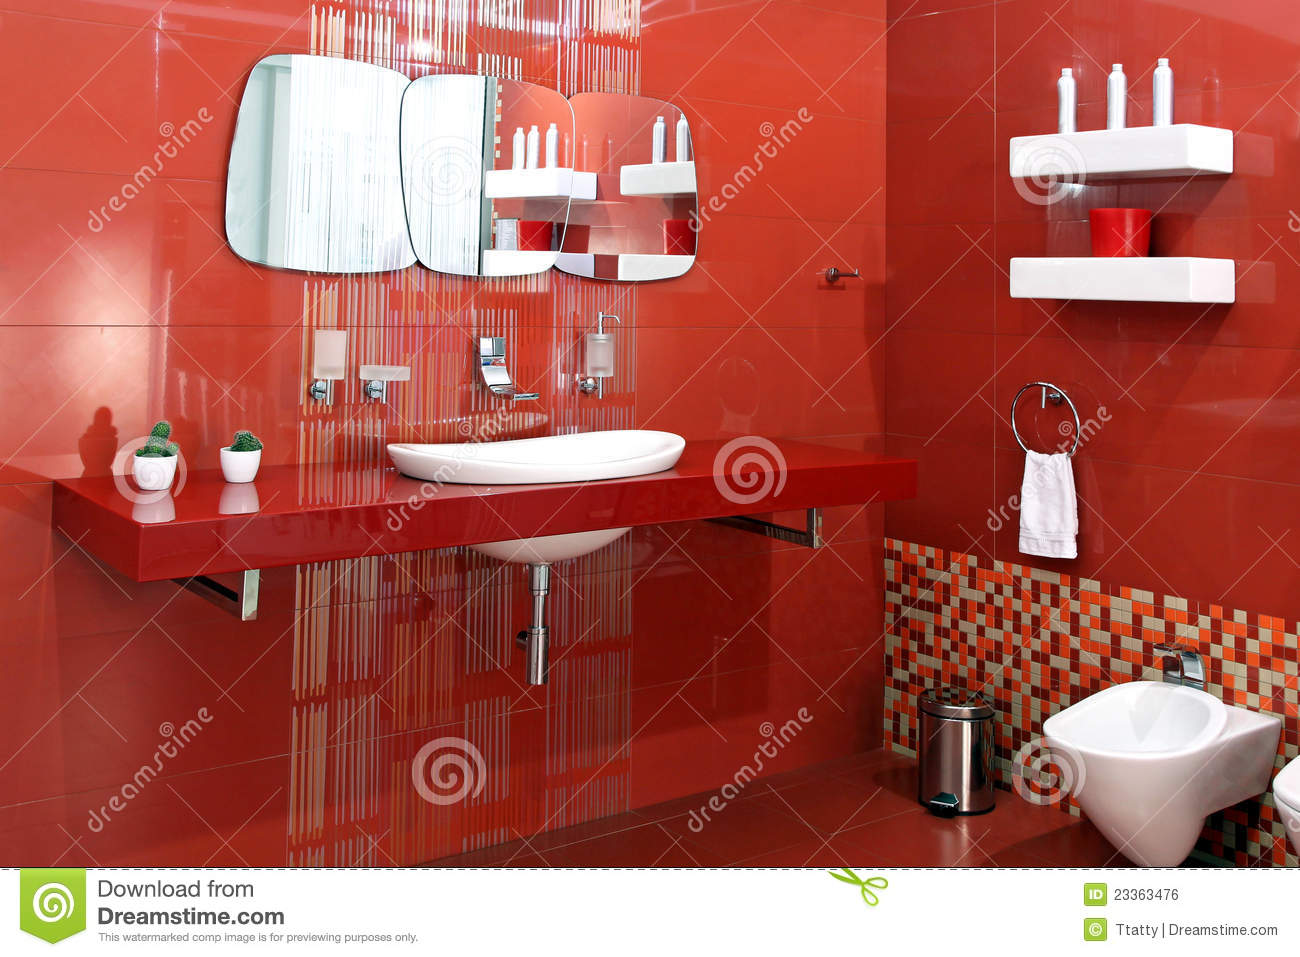 Red Bathroom Stock Photo Image Of Fixture Sink Wall 23363476